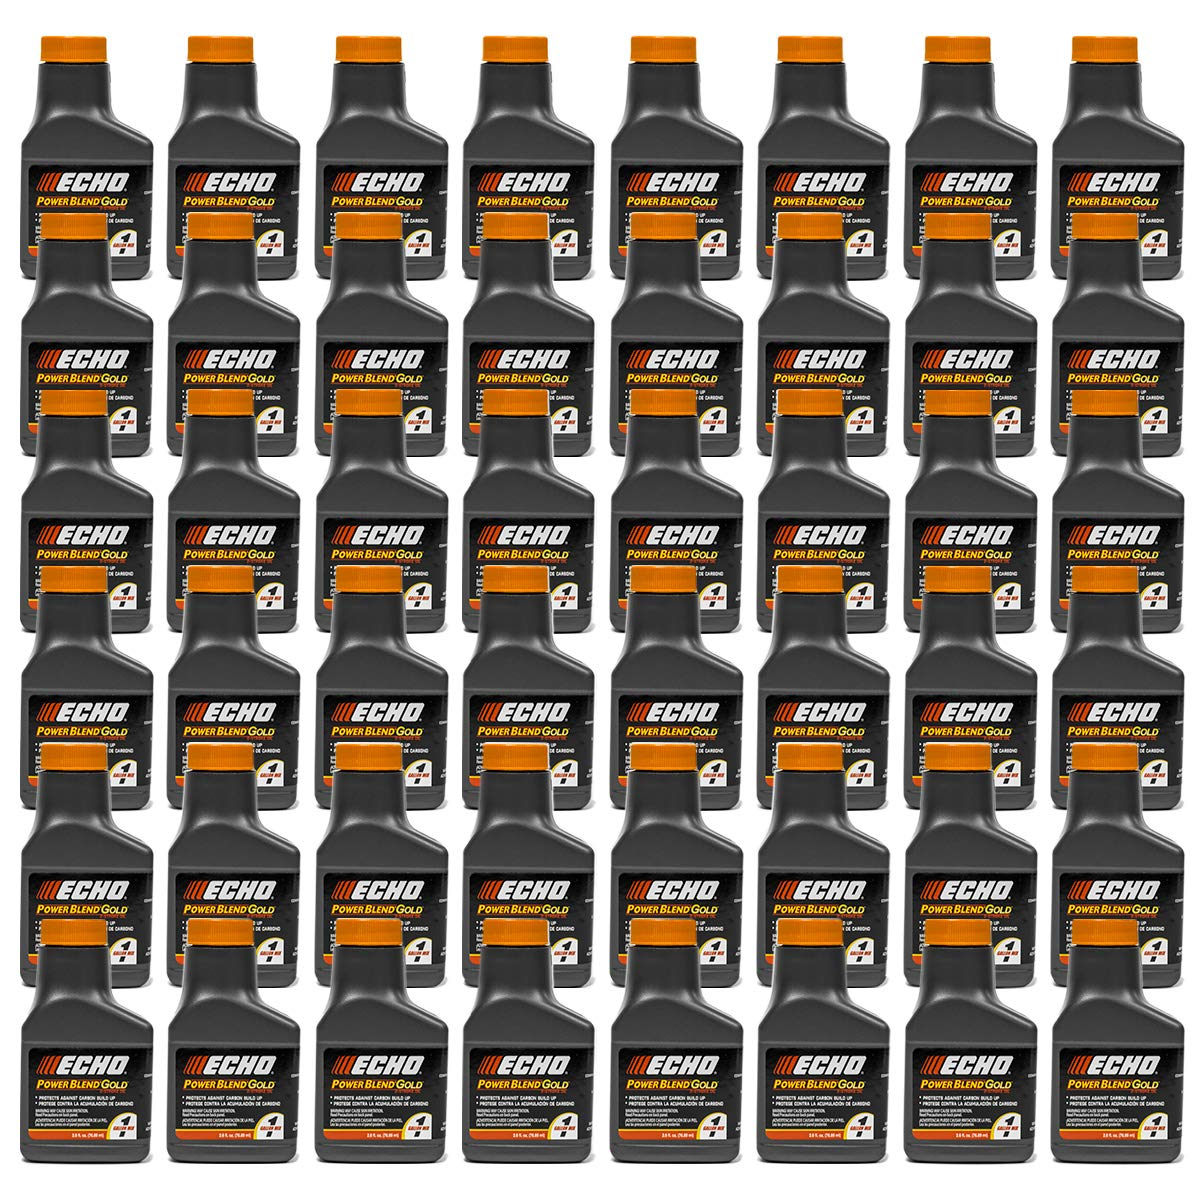 48PK Echo Oil 2.6 oz Bottles 2 Stroke Cycle Mix for 1 Gallon - Power Blend 6450001 by Replaces Echo